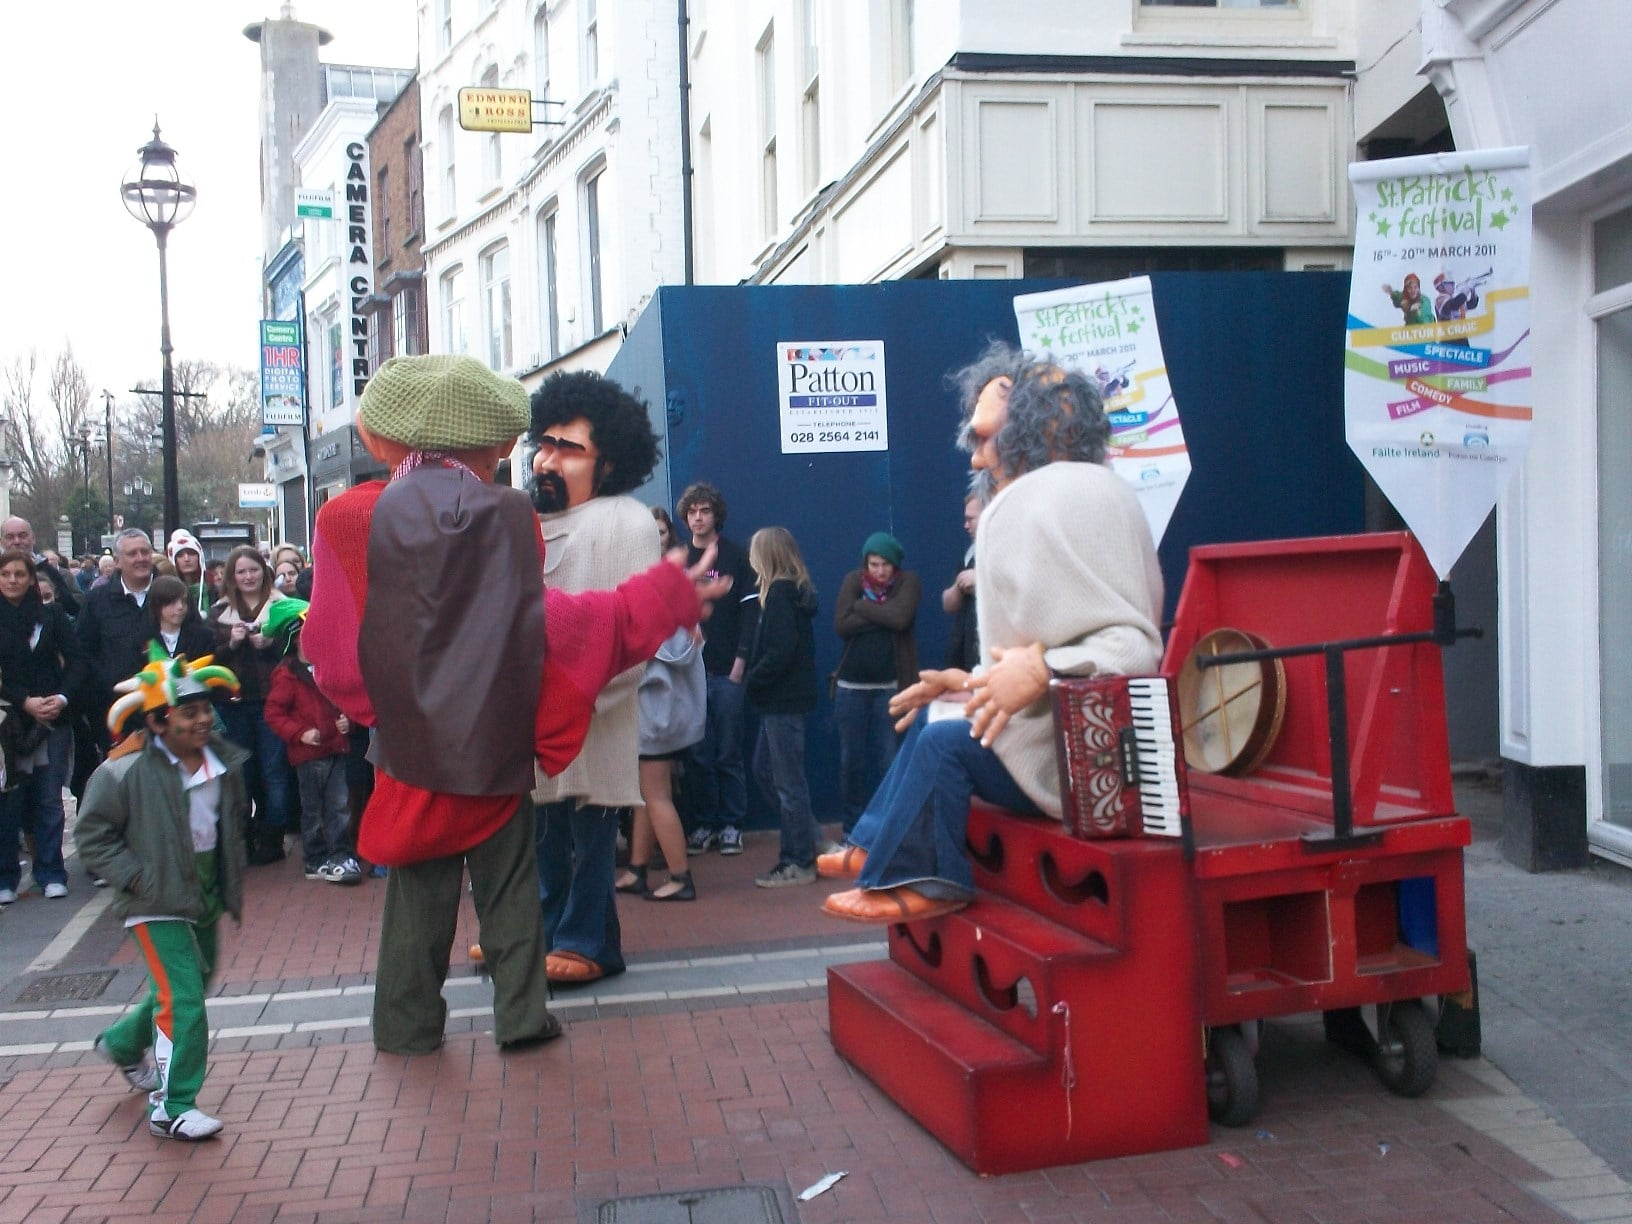 animations de rues - Dublin